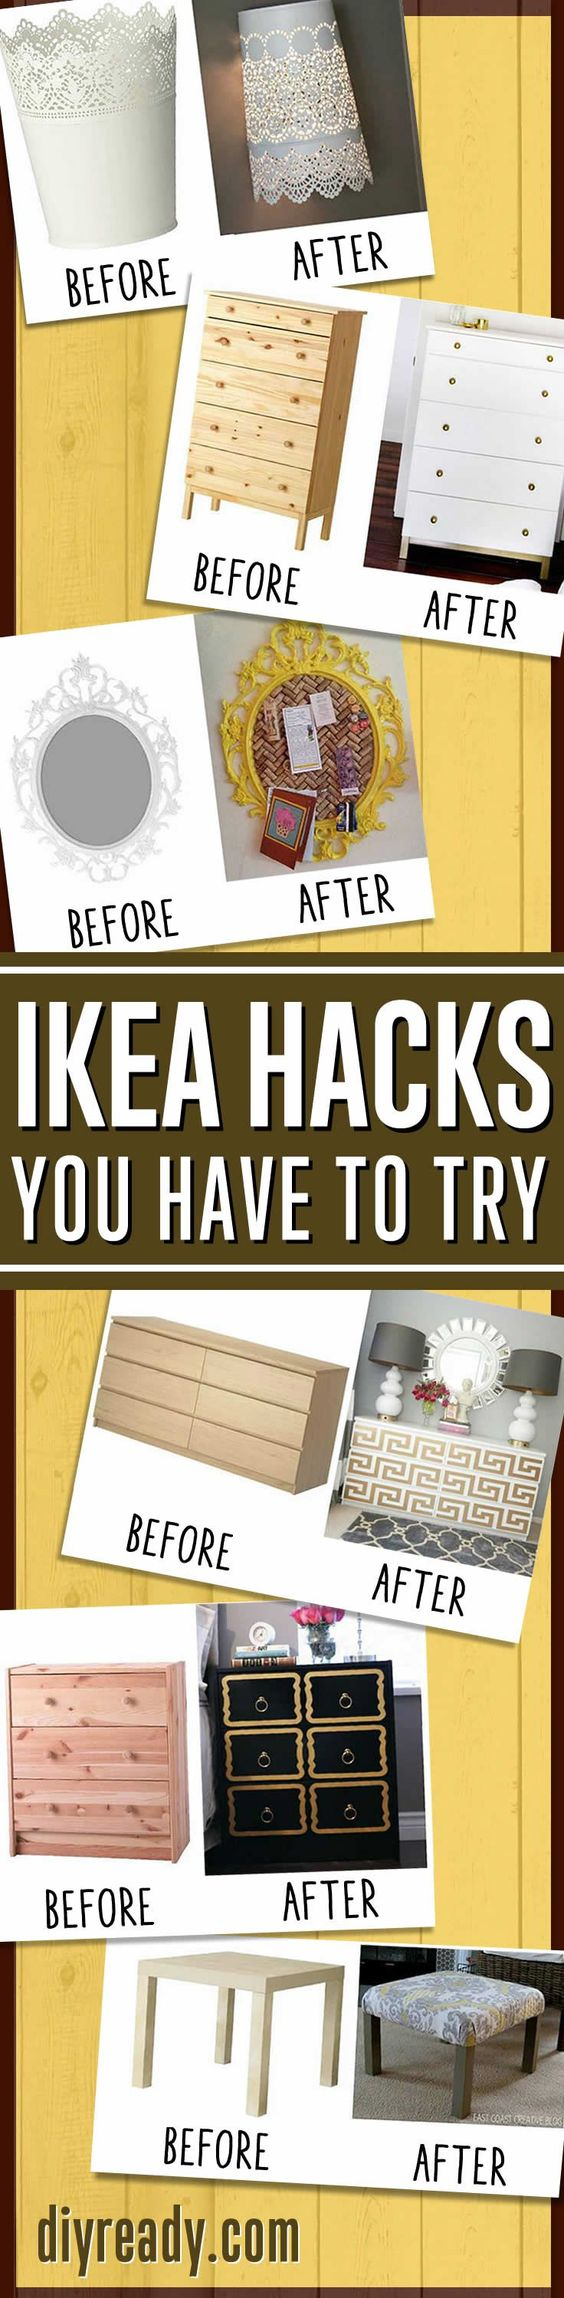 DIY Home Decor Ideas - IKEA Hacks | How To Make Easy Rustic Home Decor By DIY Ready http://diyready.com/15-amazing-ikea-hacks/